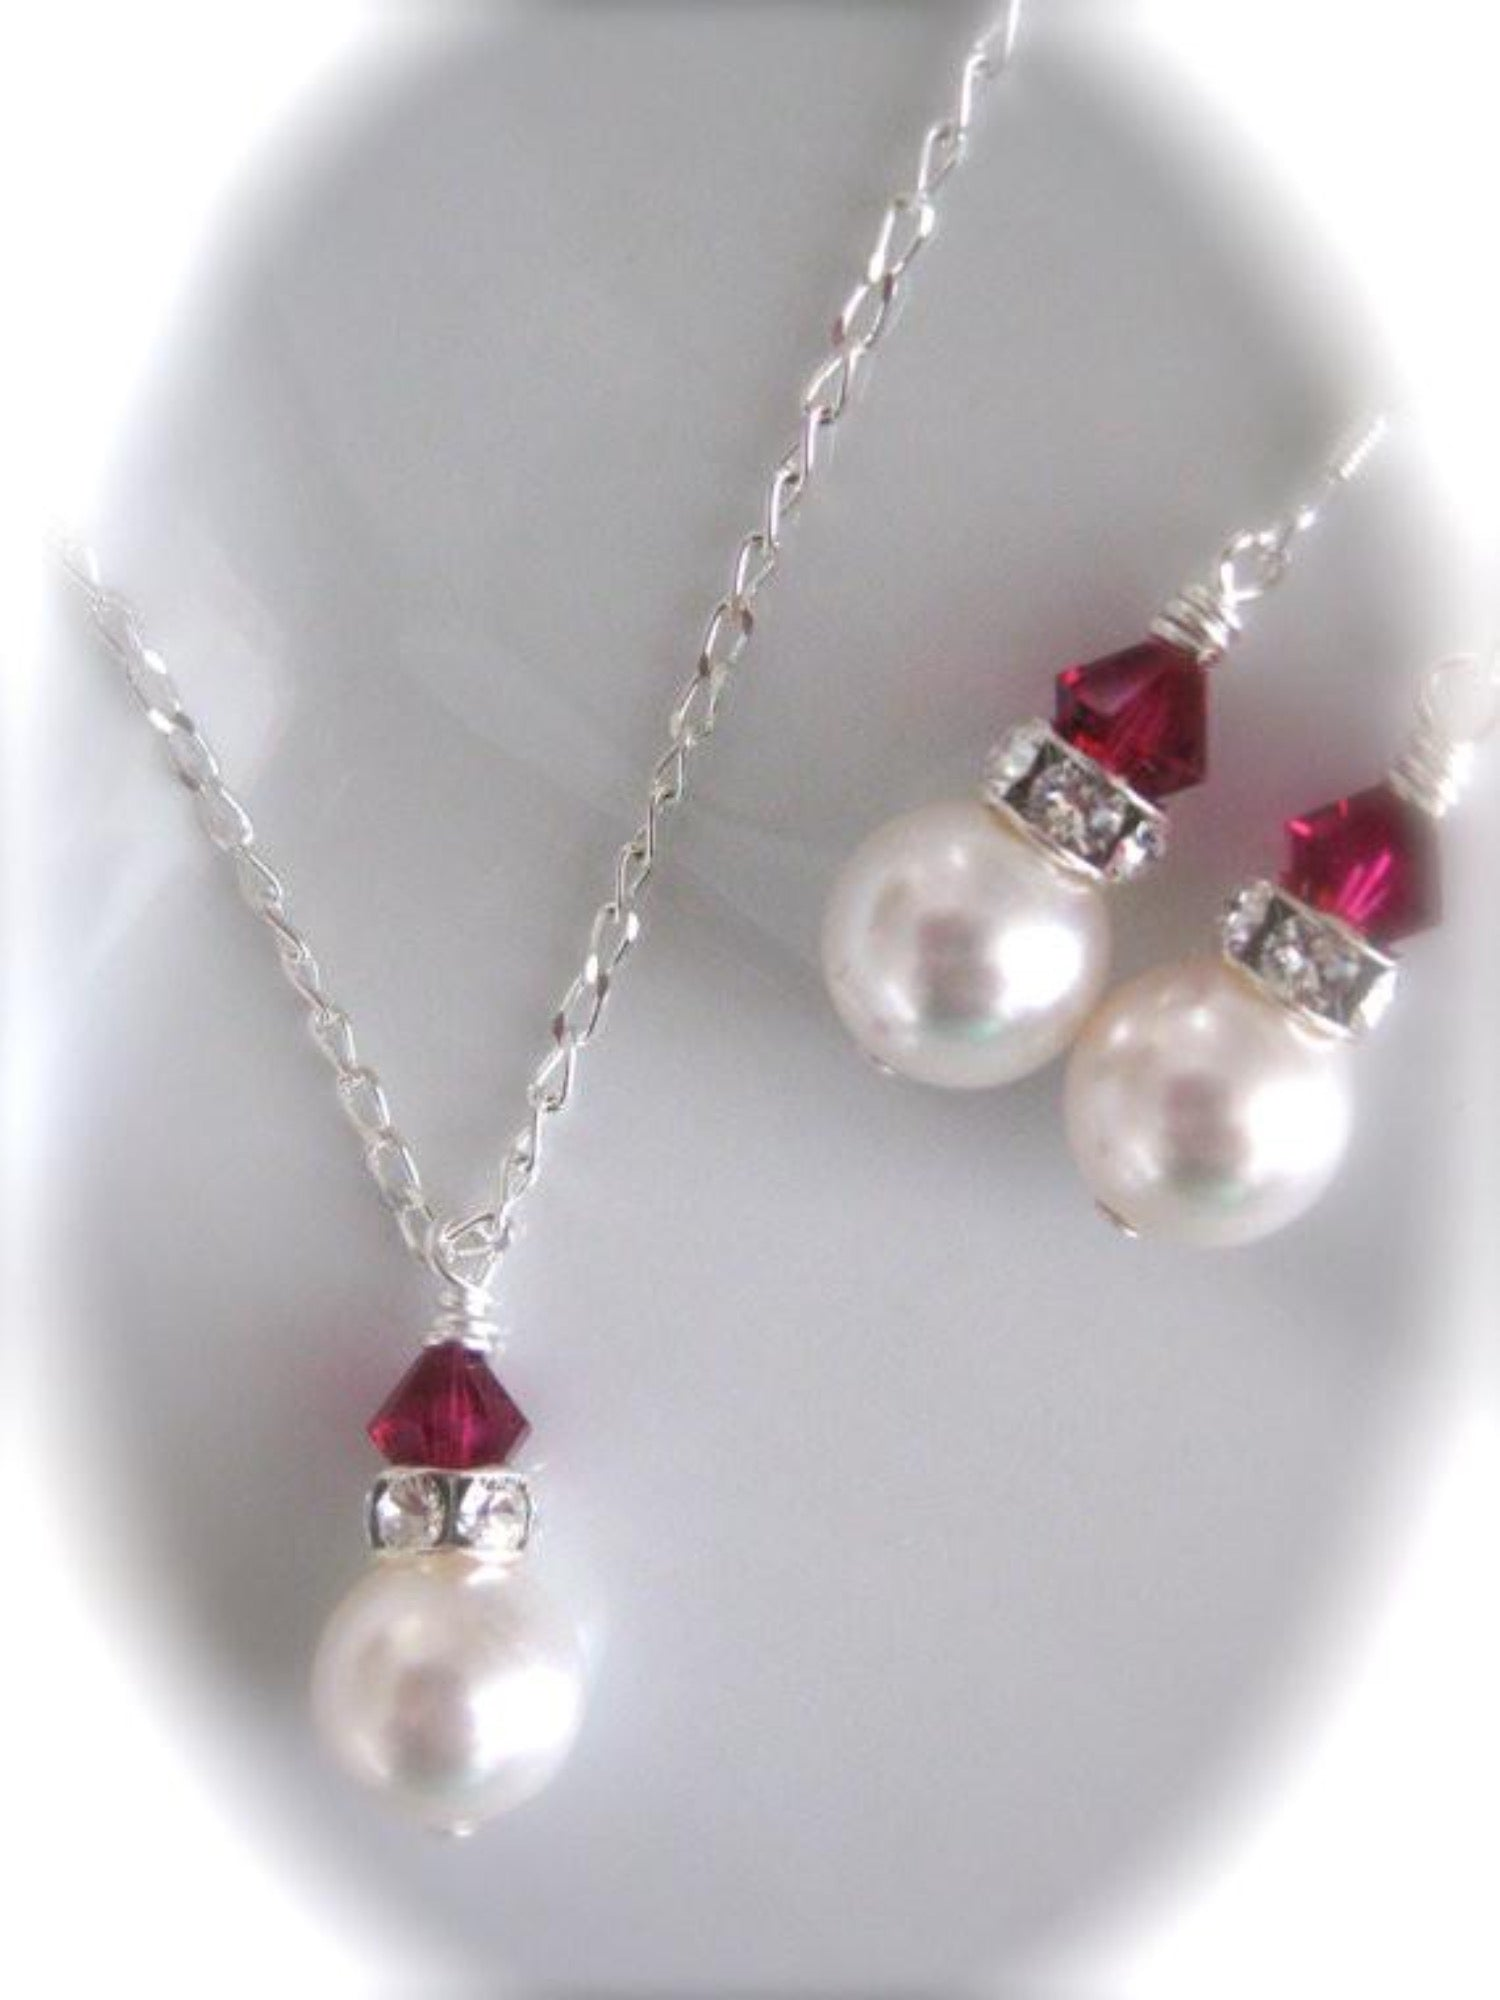 Red crystal bridesmaid jewelry - Clairesparklesbridal - 1